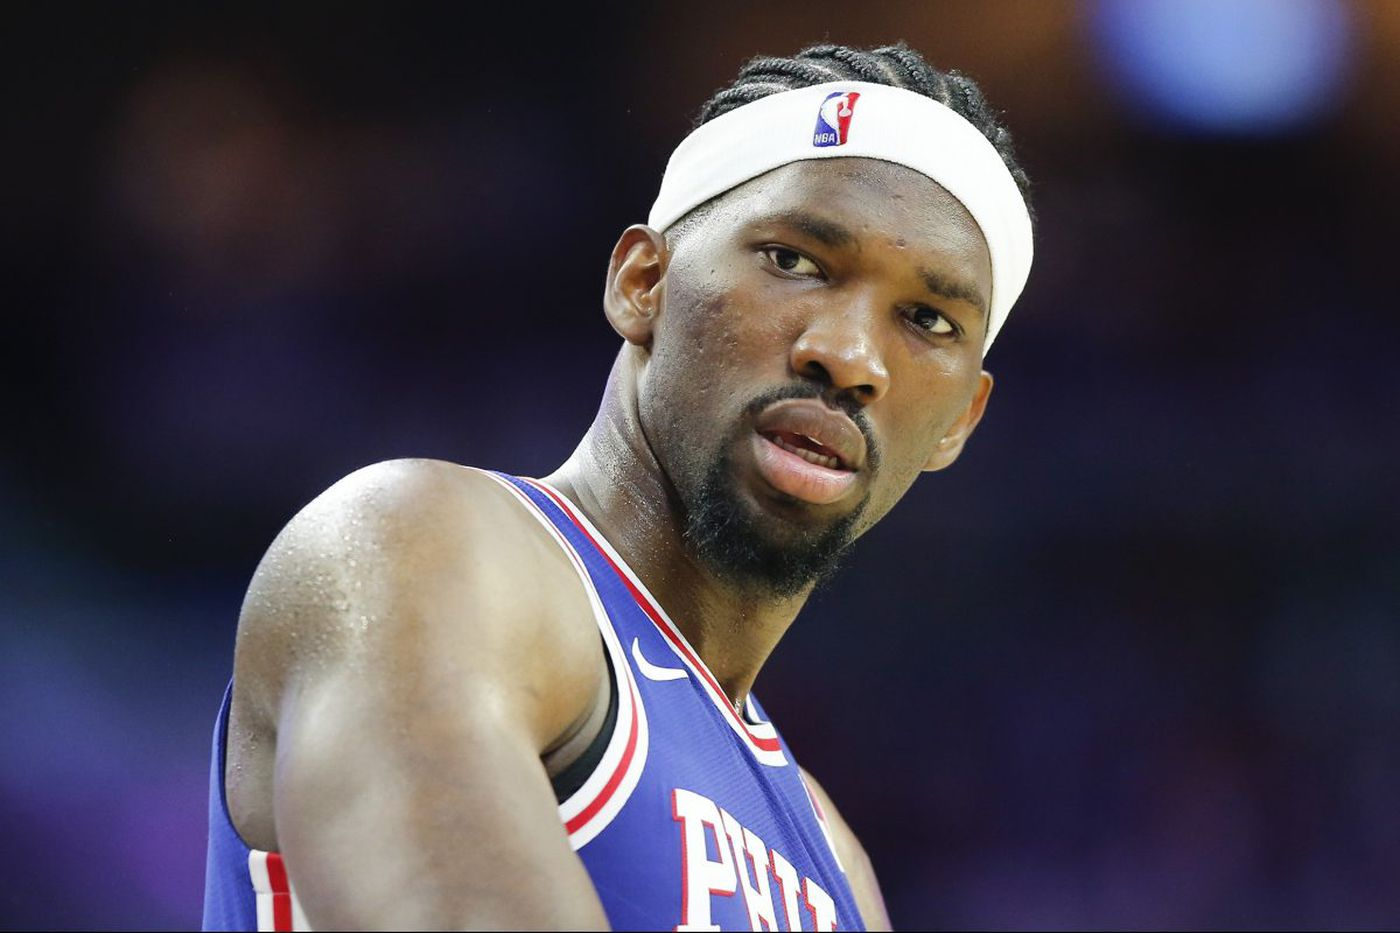 Sixers-Pistons preview: Joel Embiid to return